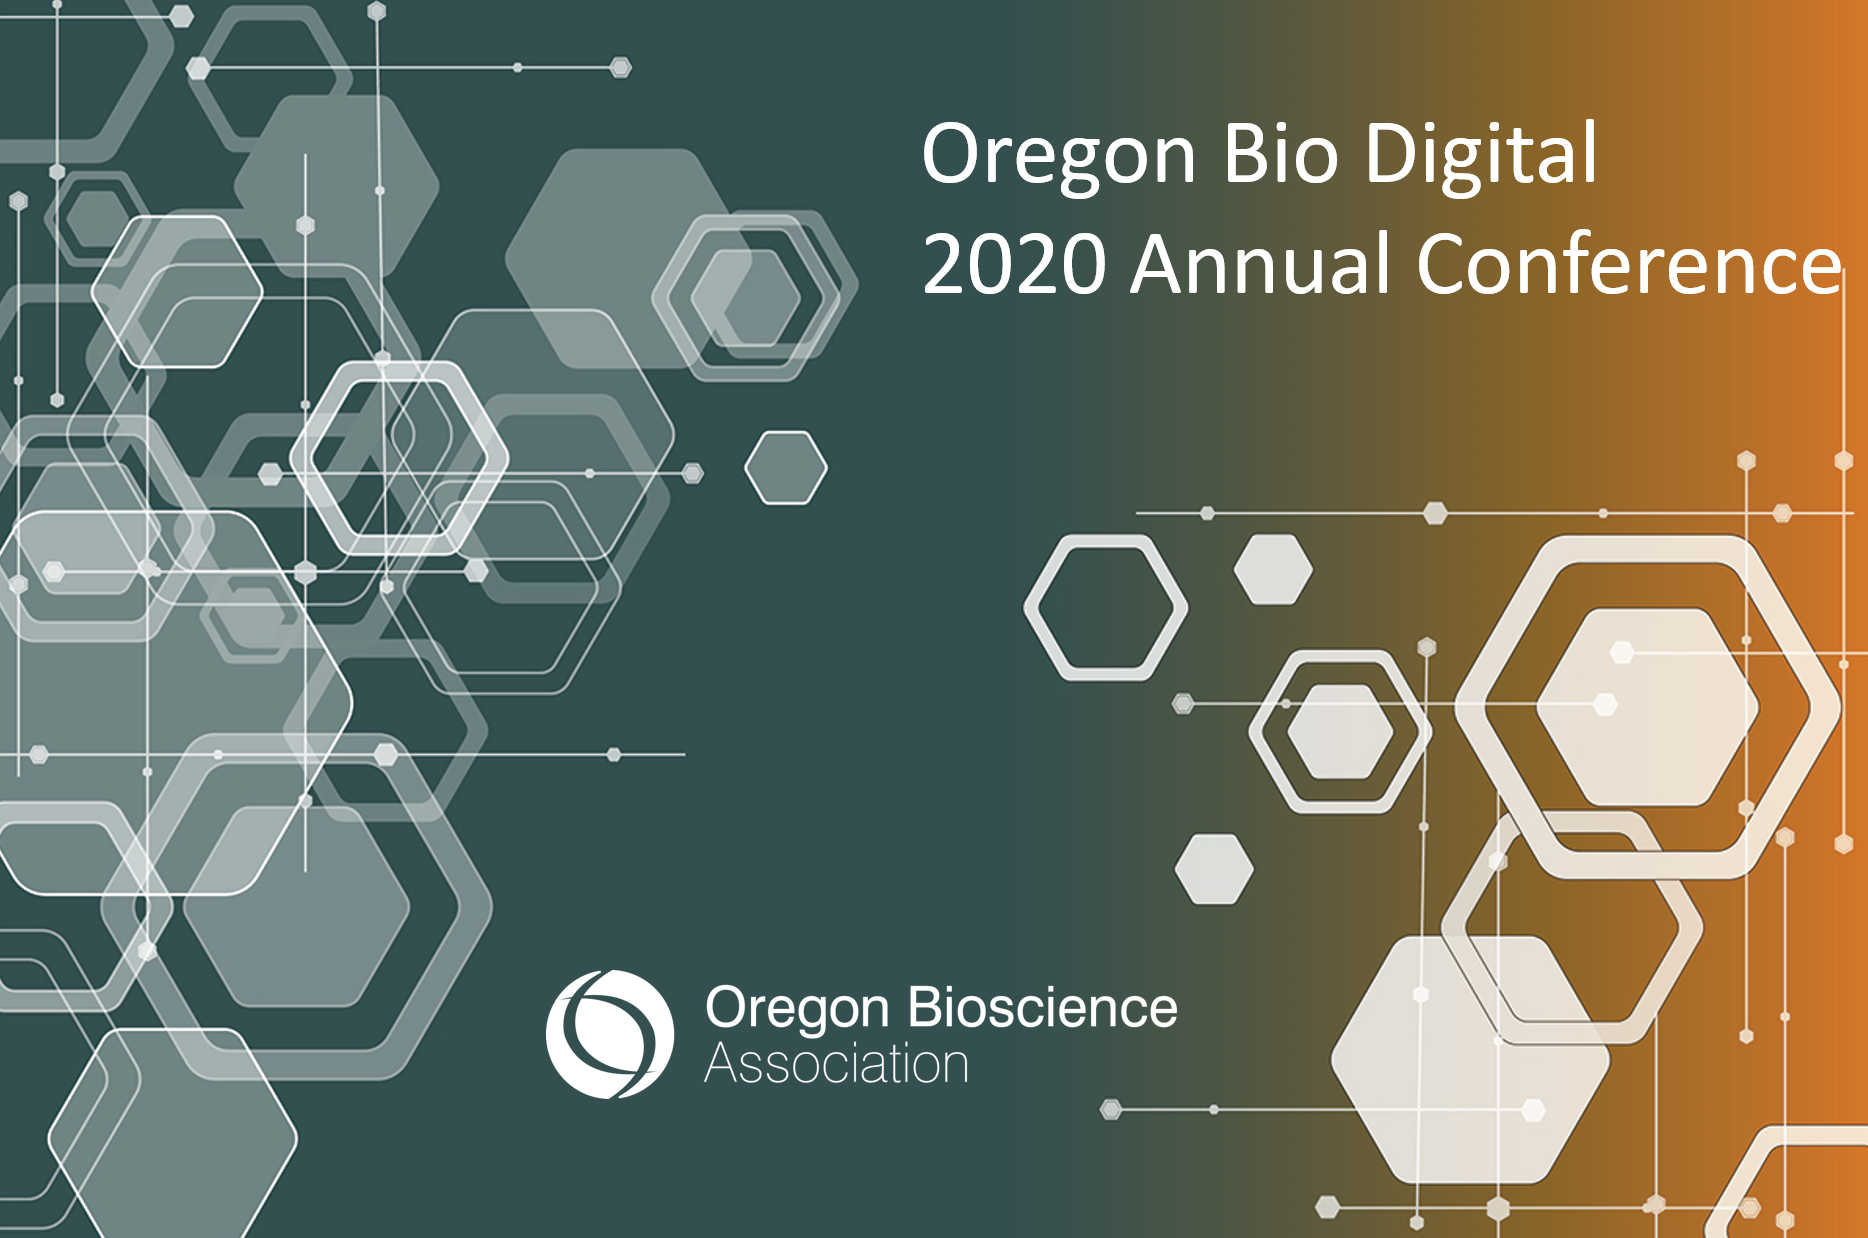 Graphic for Oregon Bioscience Association annual conference for 2020.